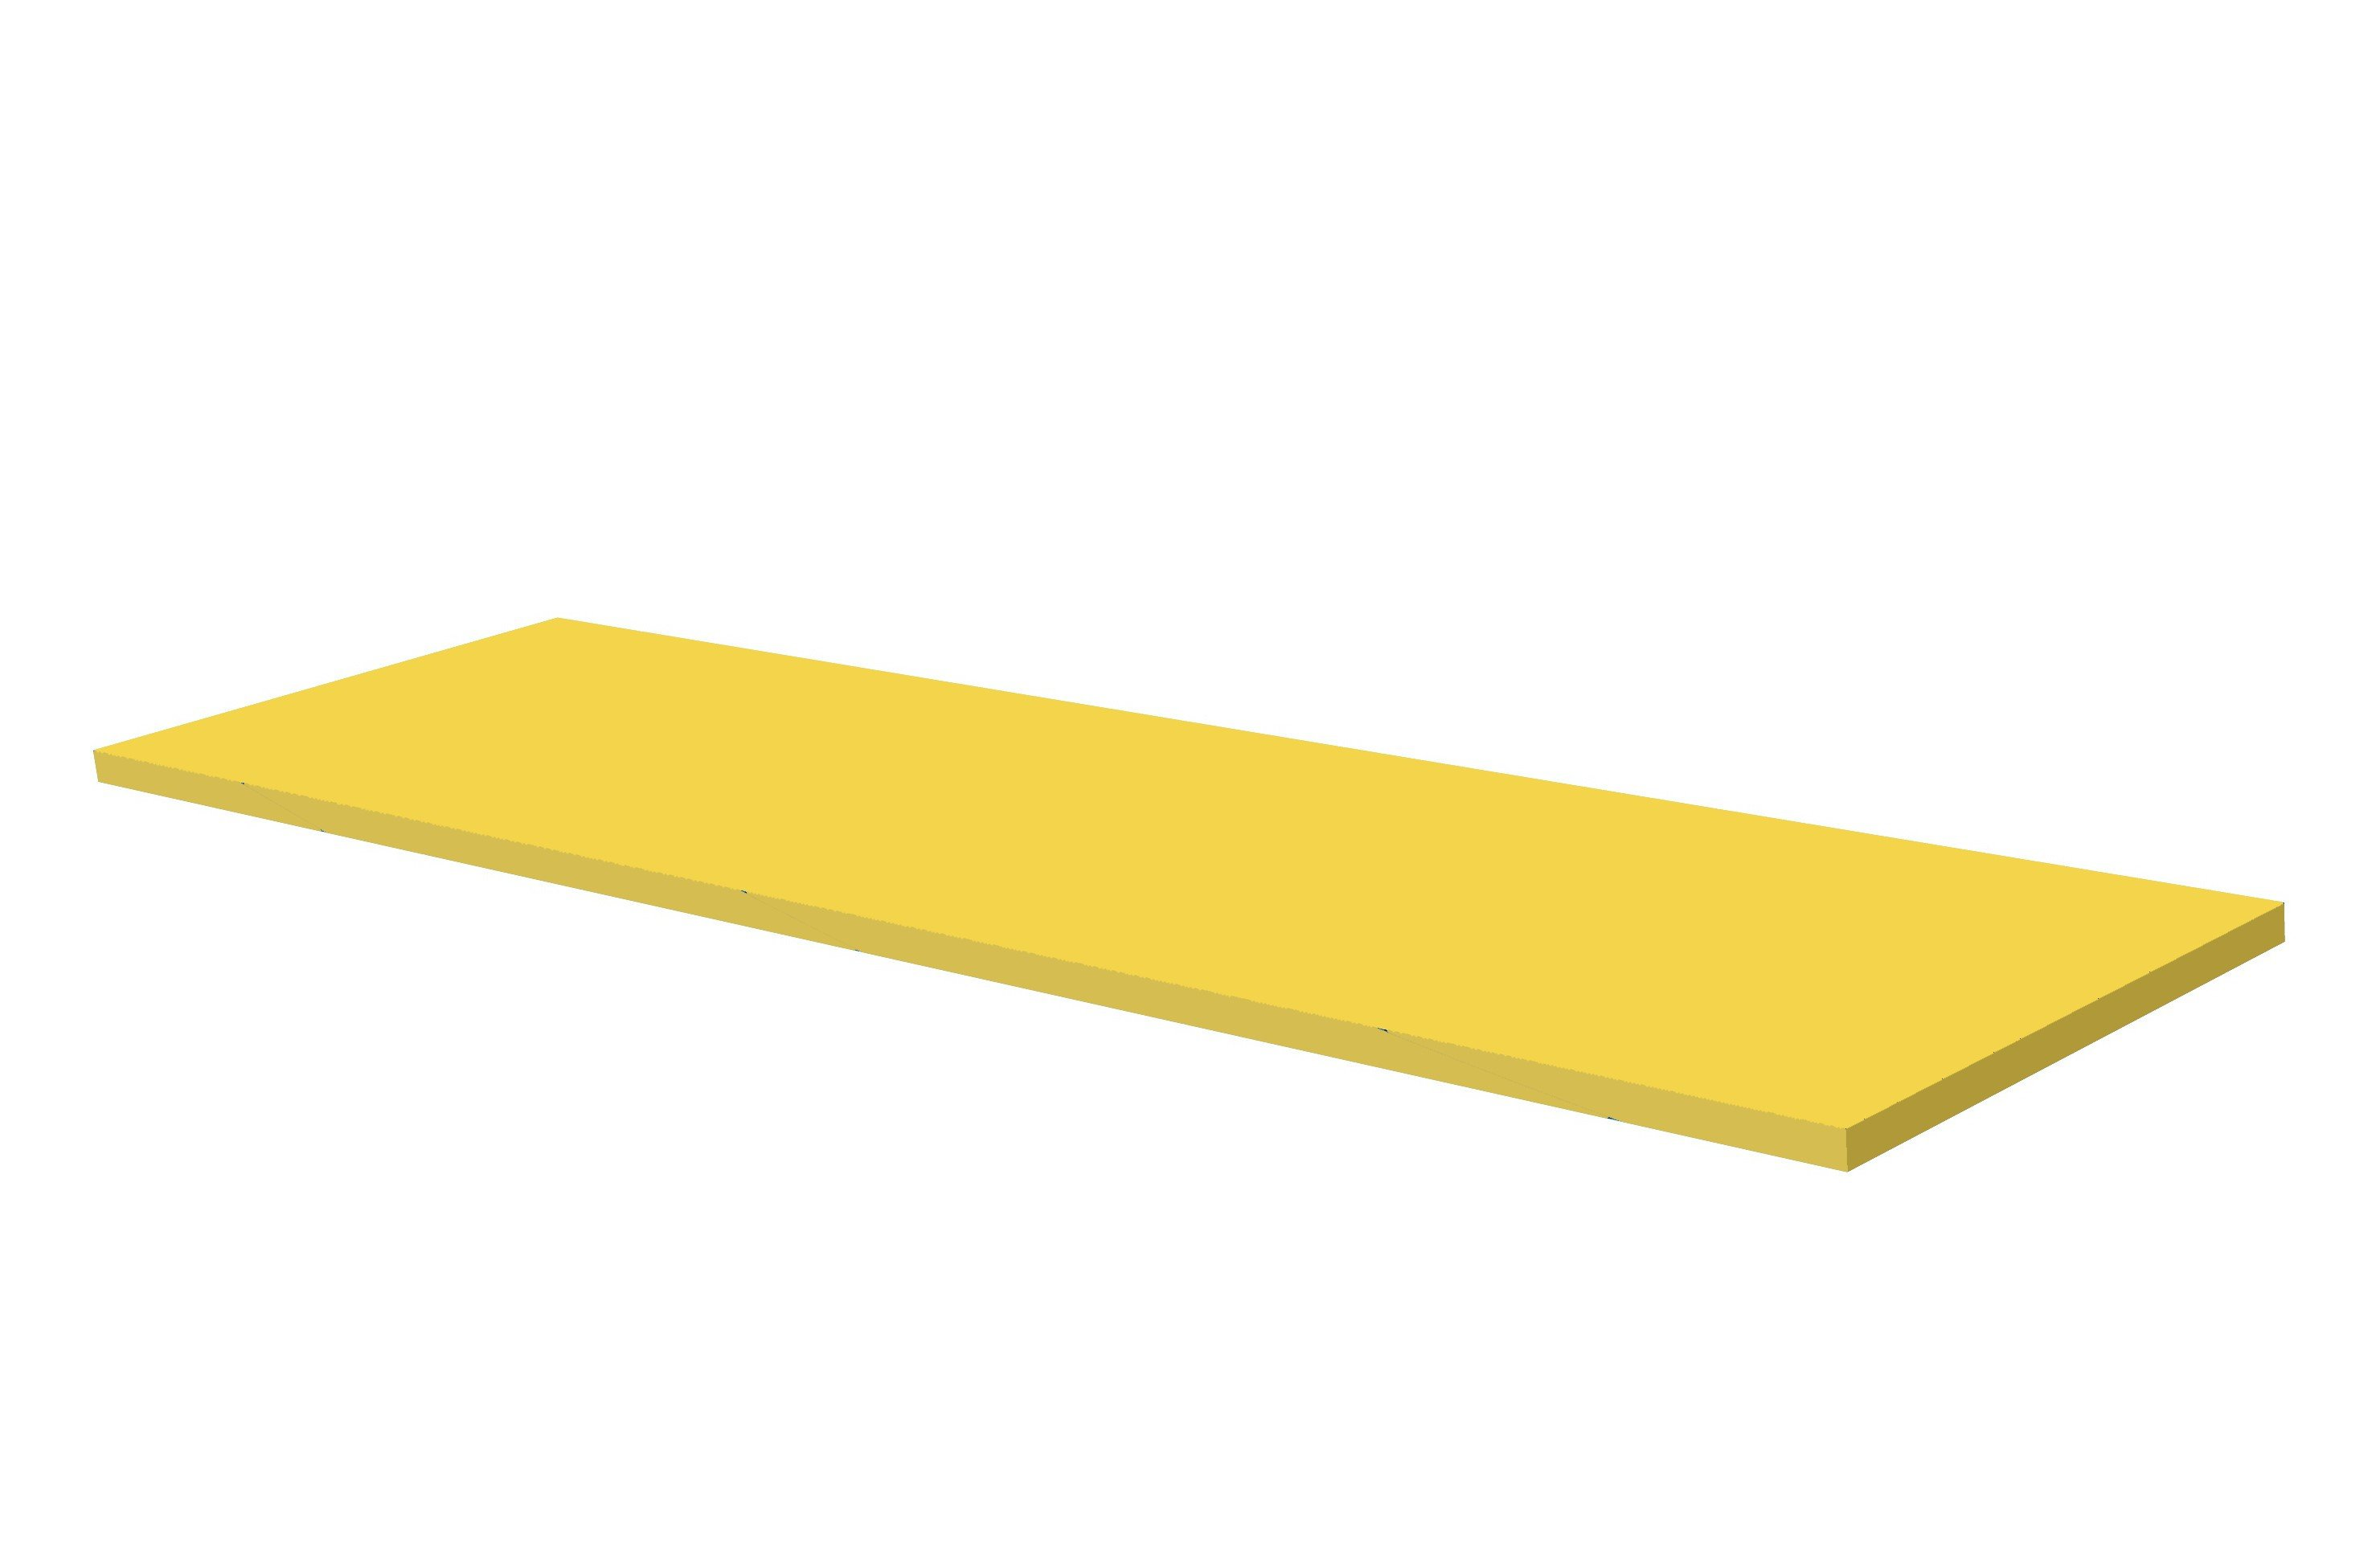 Yellow rubber sheet